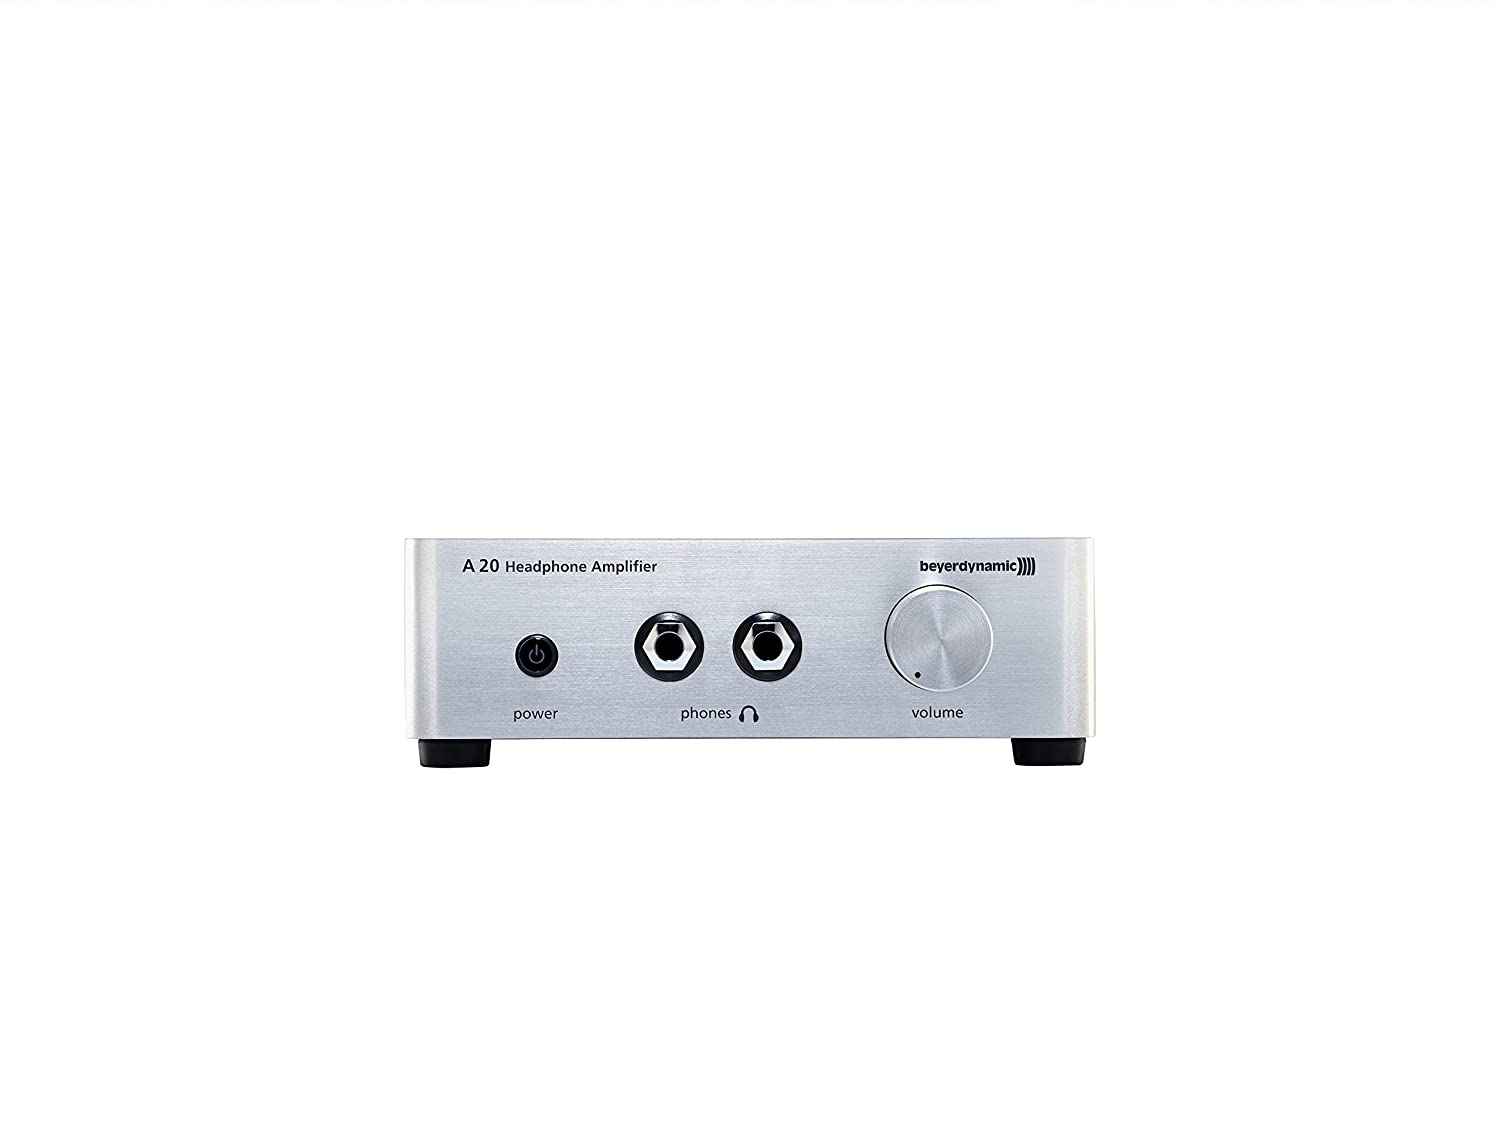 Beyerdynamic A20 Headphone Amplifier Silver Home Stereo Volume Control In Electrical Engineering Audio Theater